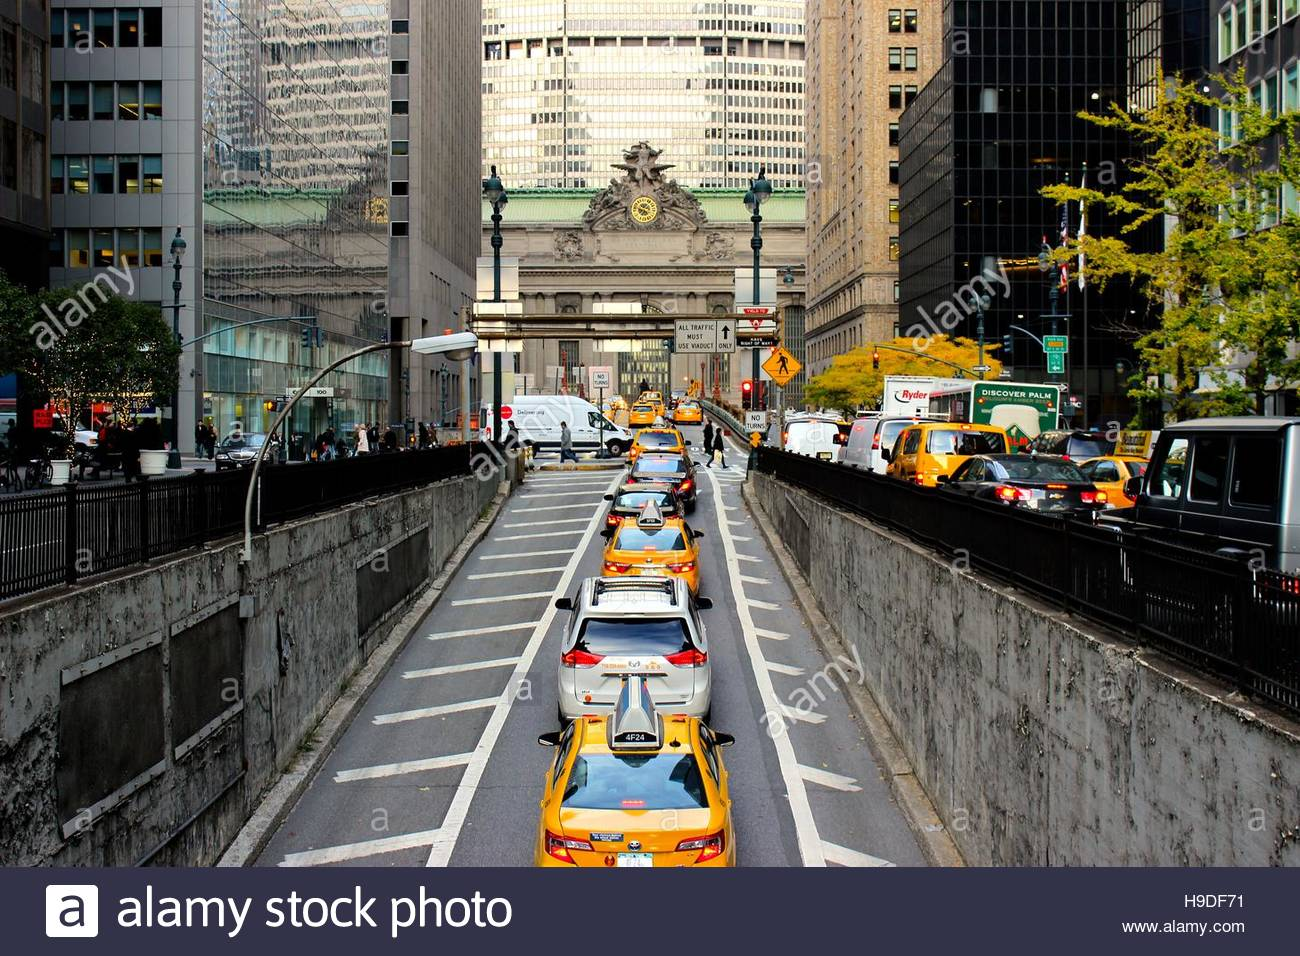 Des taxis à l'extérieur de la gare Grand Central à New York Photo Stock